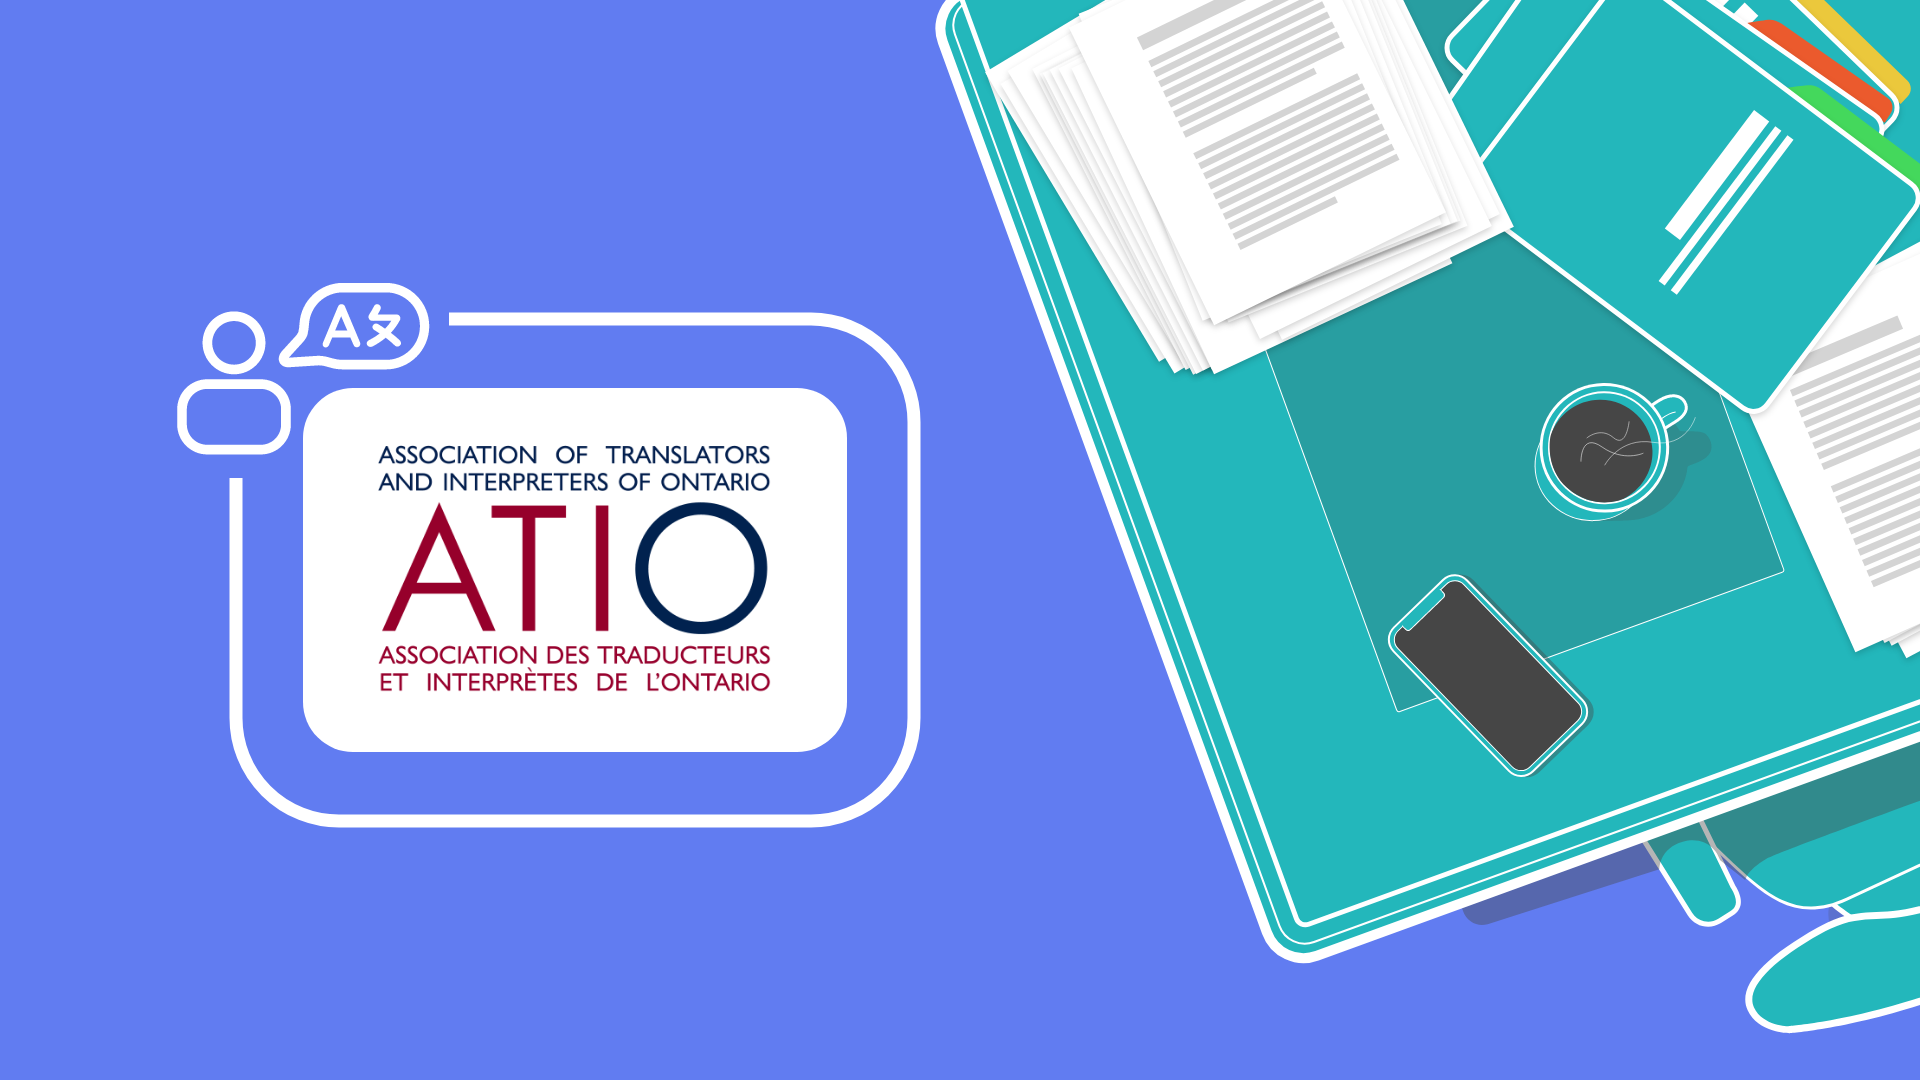 How can I become an ATIO certified translator?